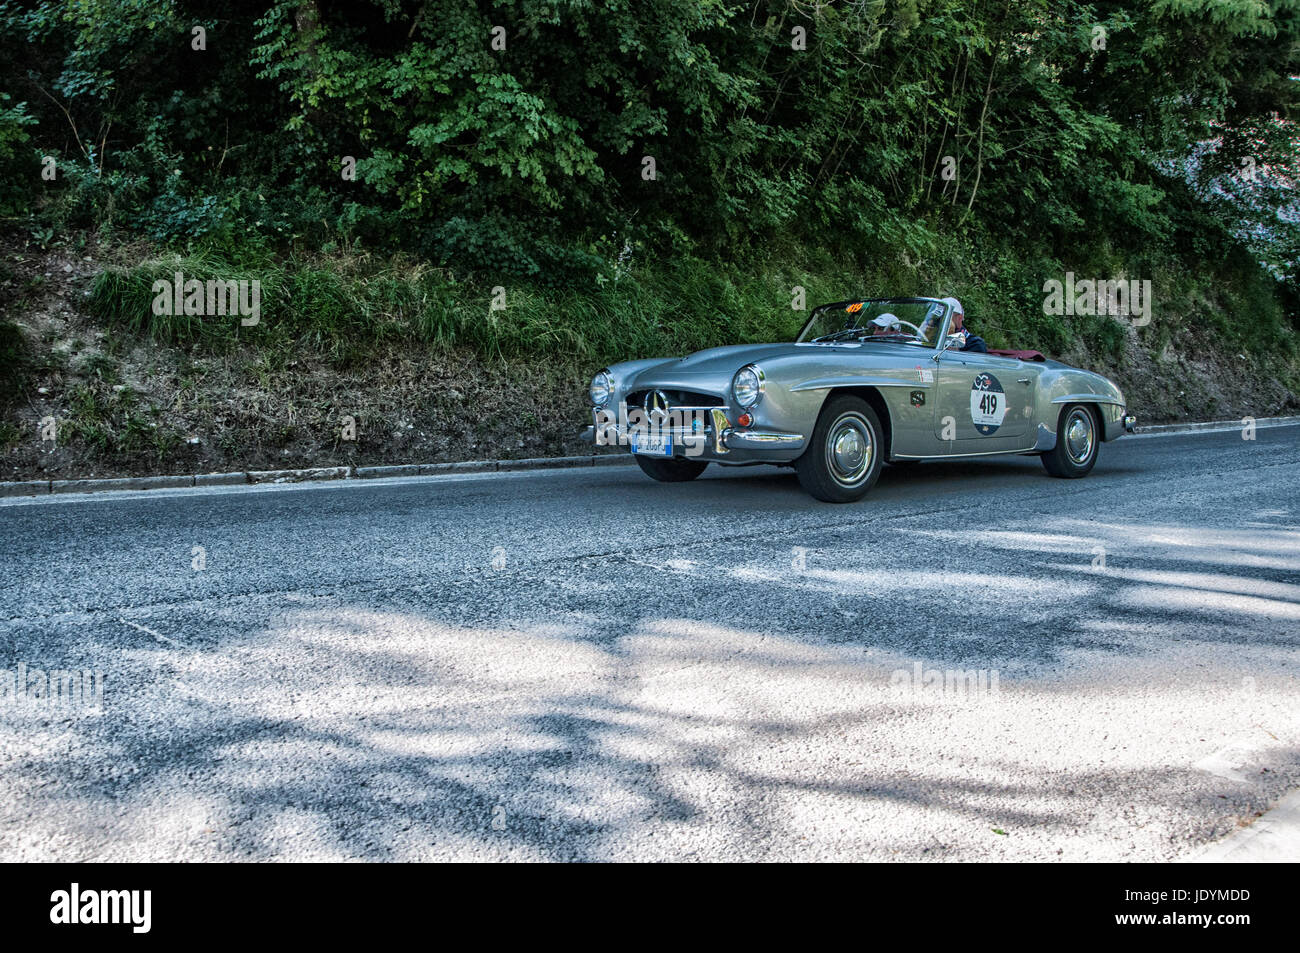 MERCEDES-BENZ 190 SL 1956 on an old racing car in rally Mille ...